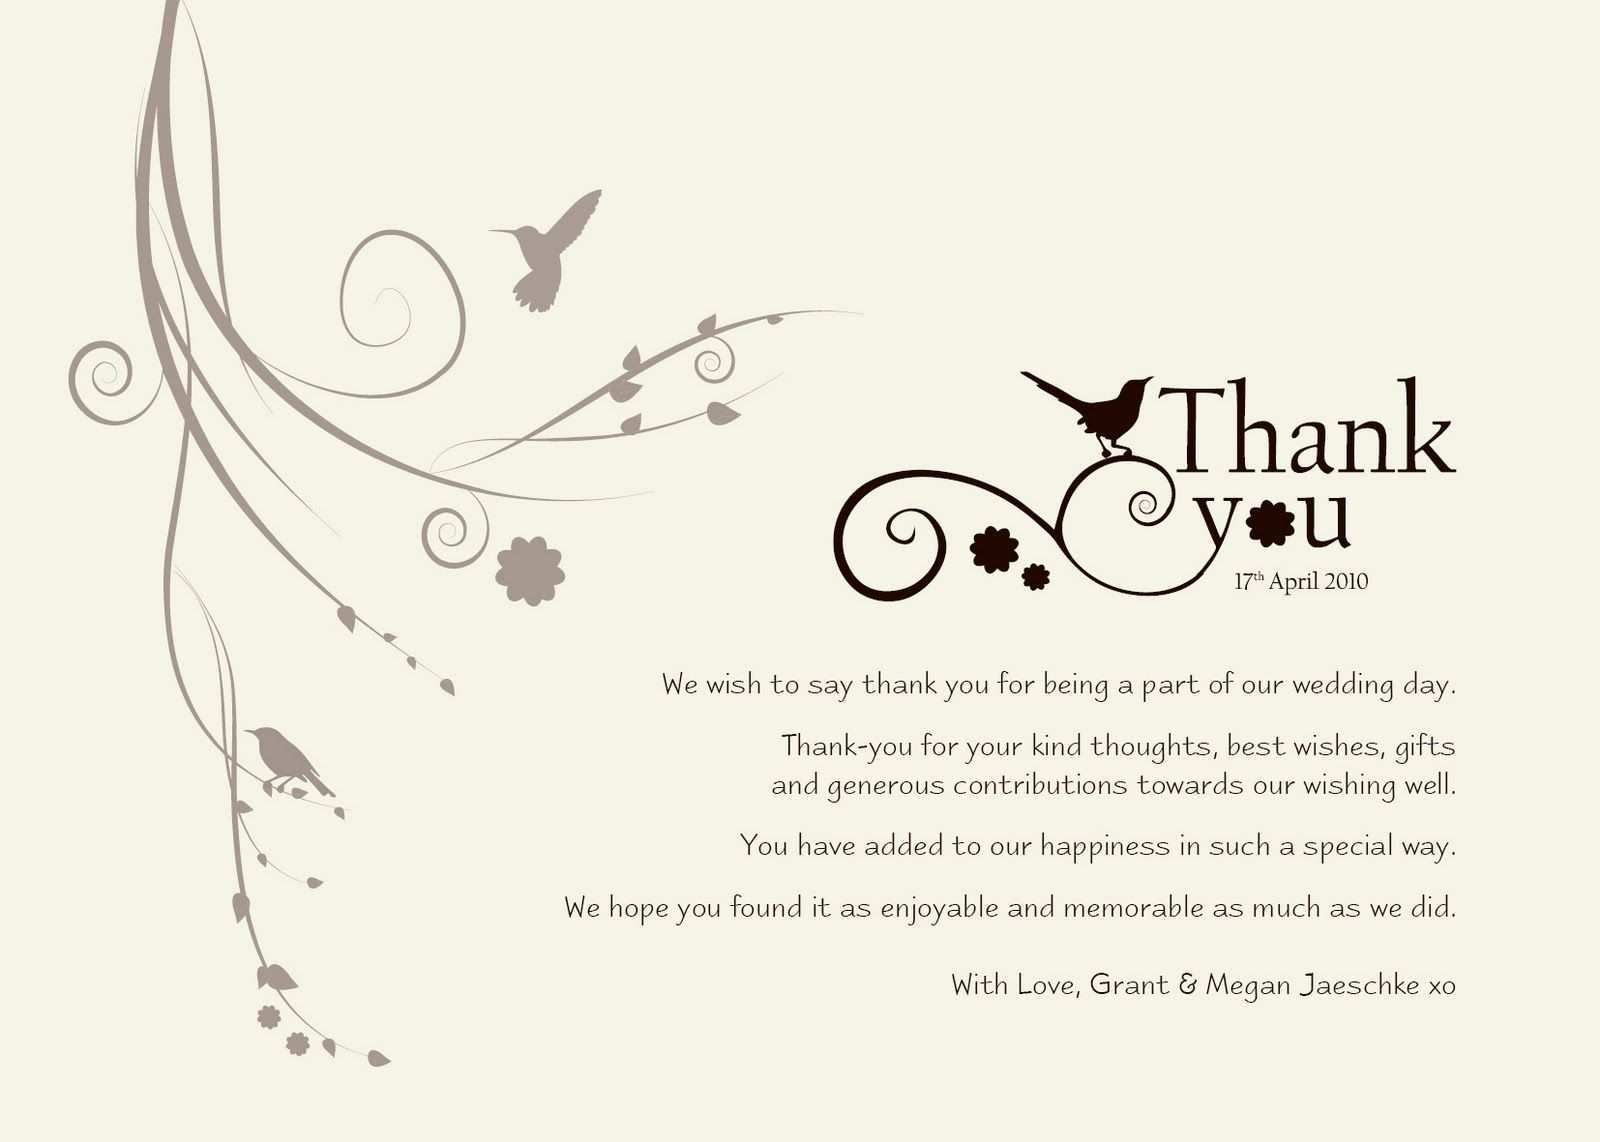 000 Unusual Thank You Note Template Word 2010 High Resolution Full